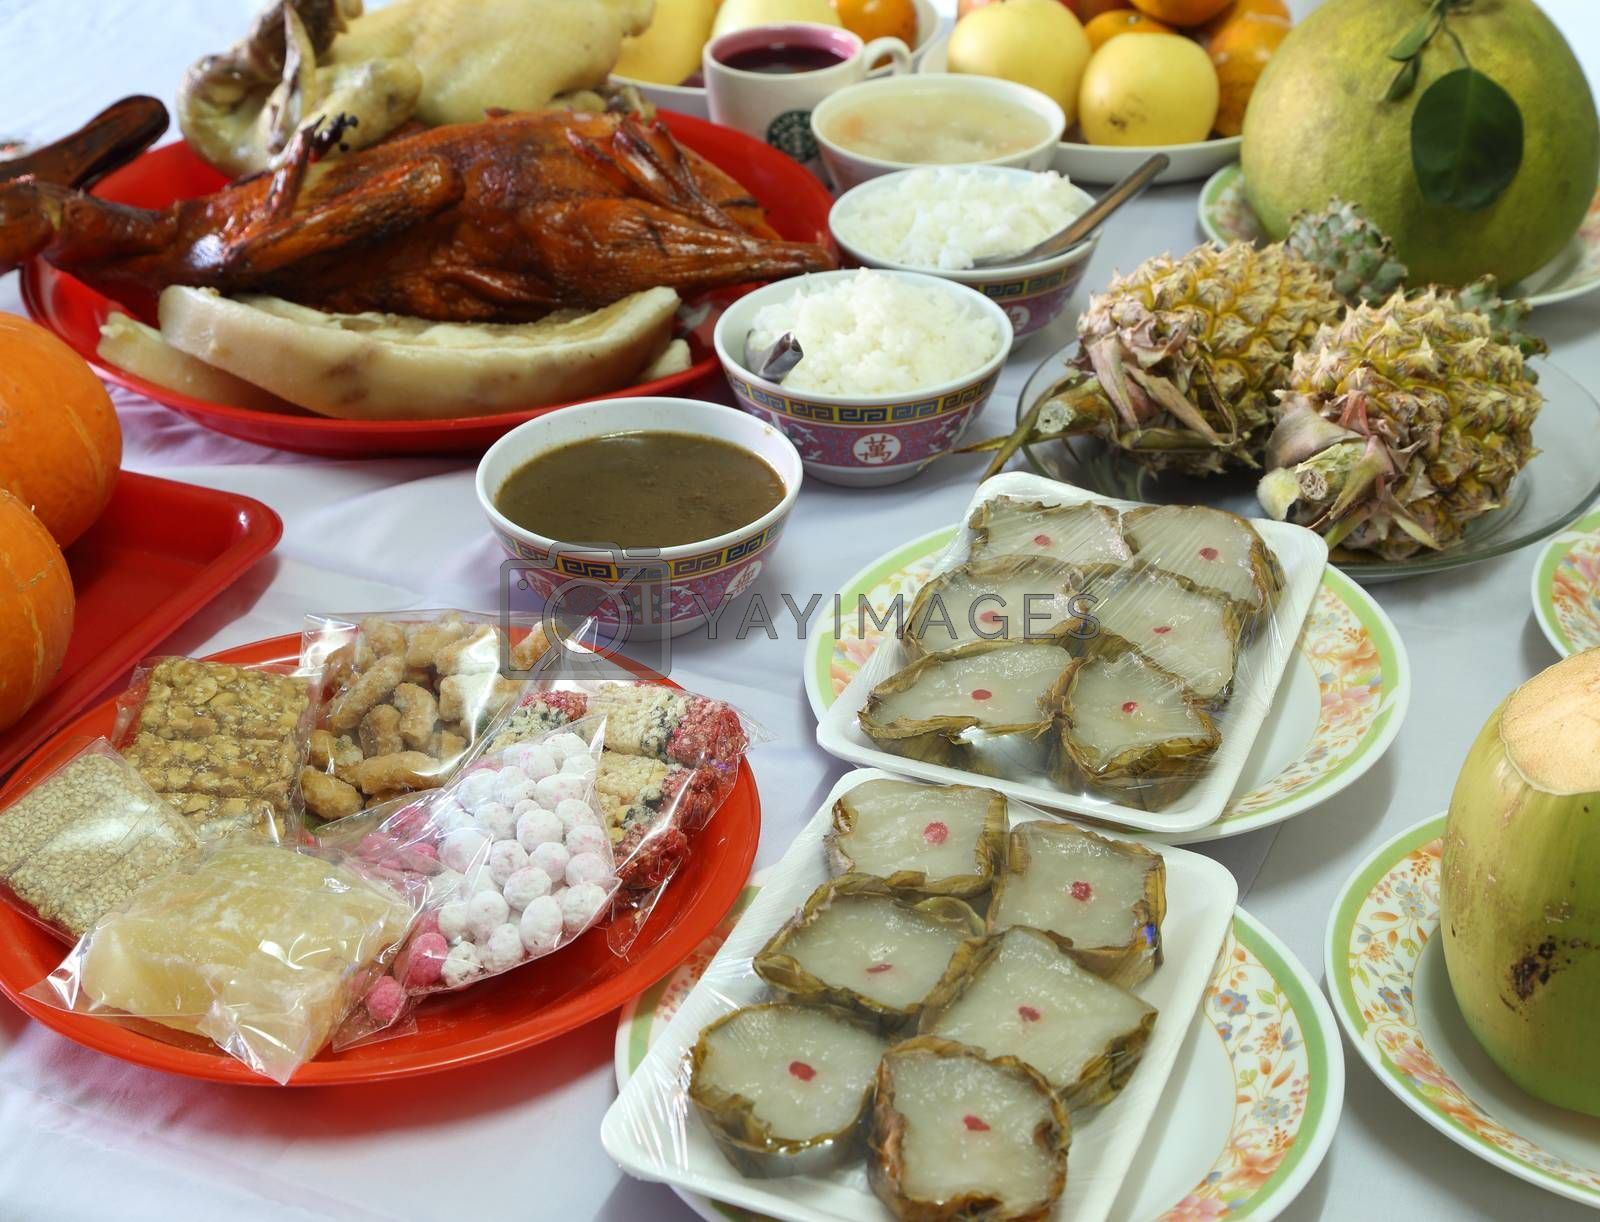 Royalty free image of various food for Chinese New Year culture by geargodz